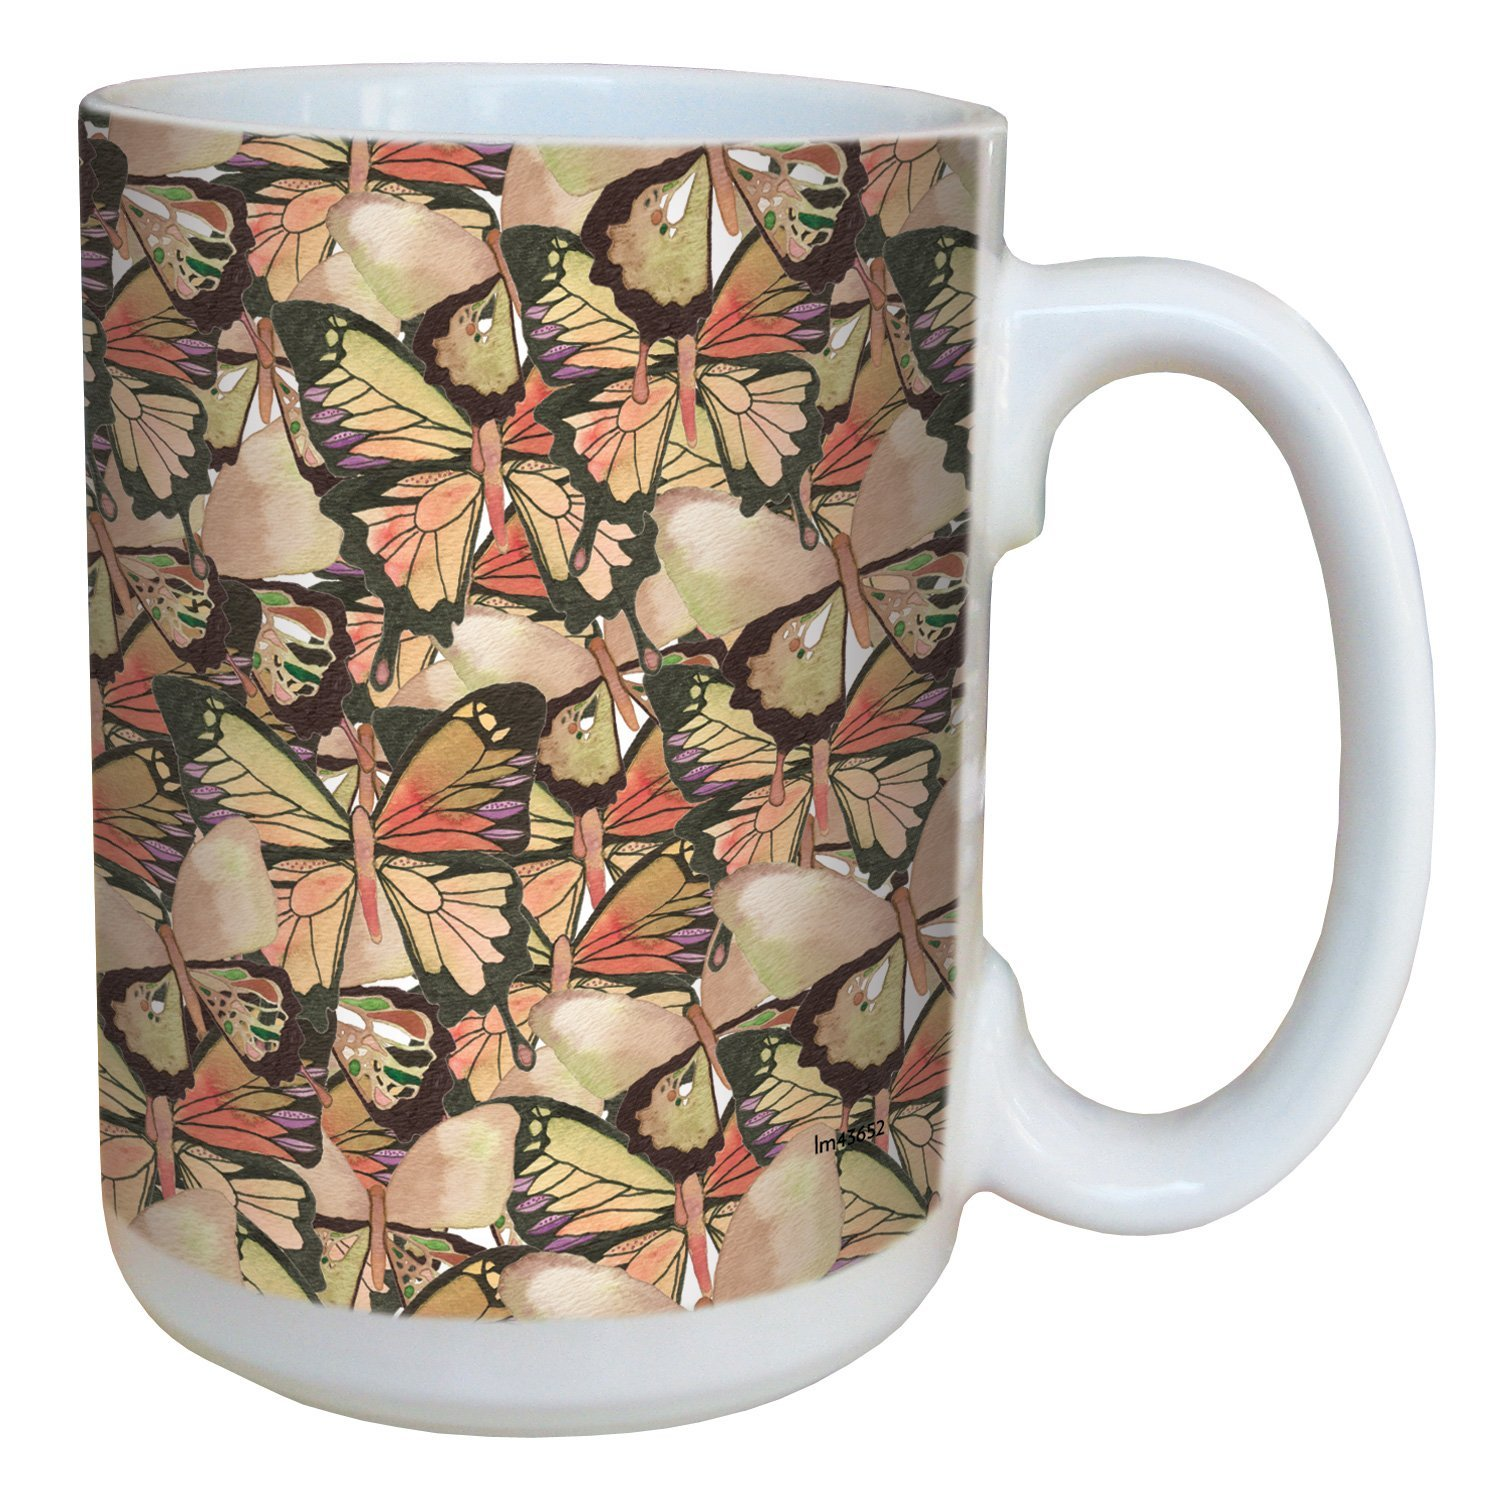 Tree-Free Greetings lm43652 Amazing Butterfly Pattern by Shell Rummel Ceramic Mug with Full-Sized Ha